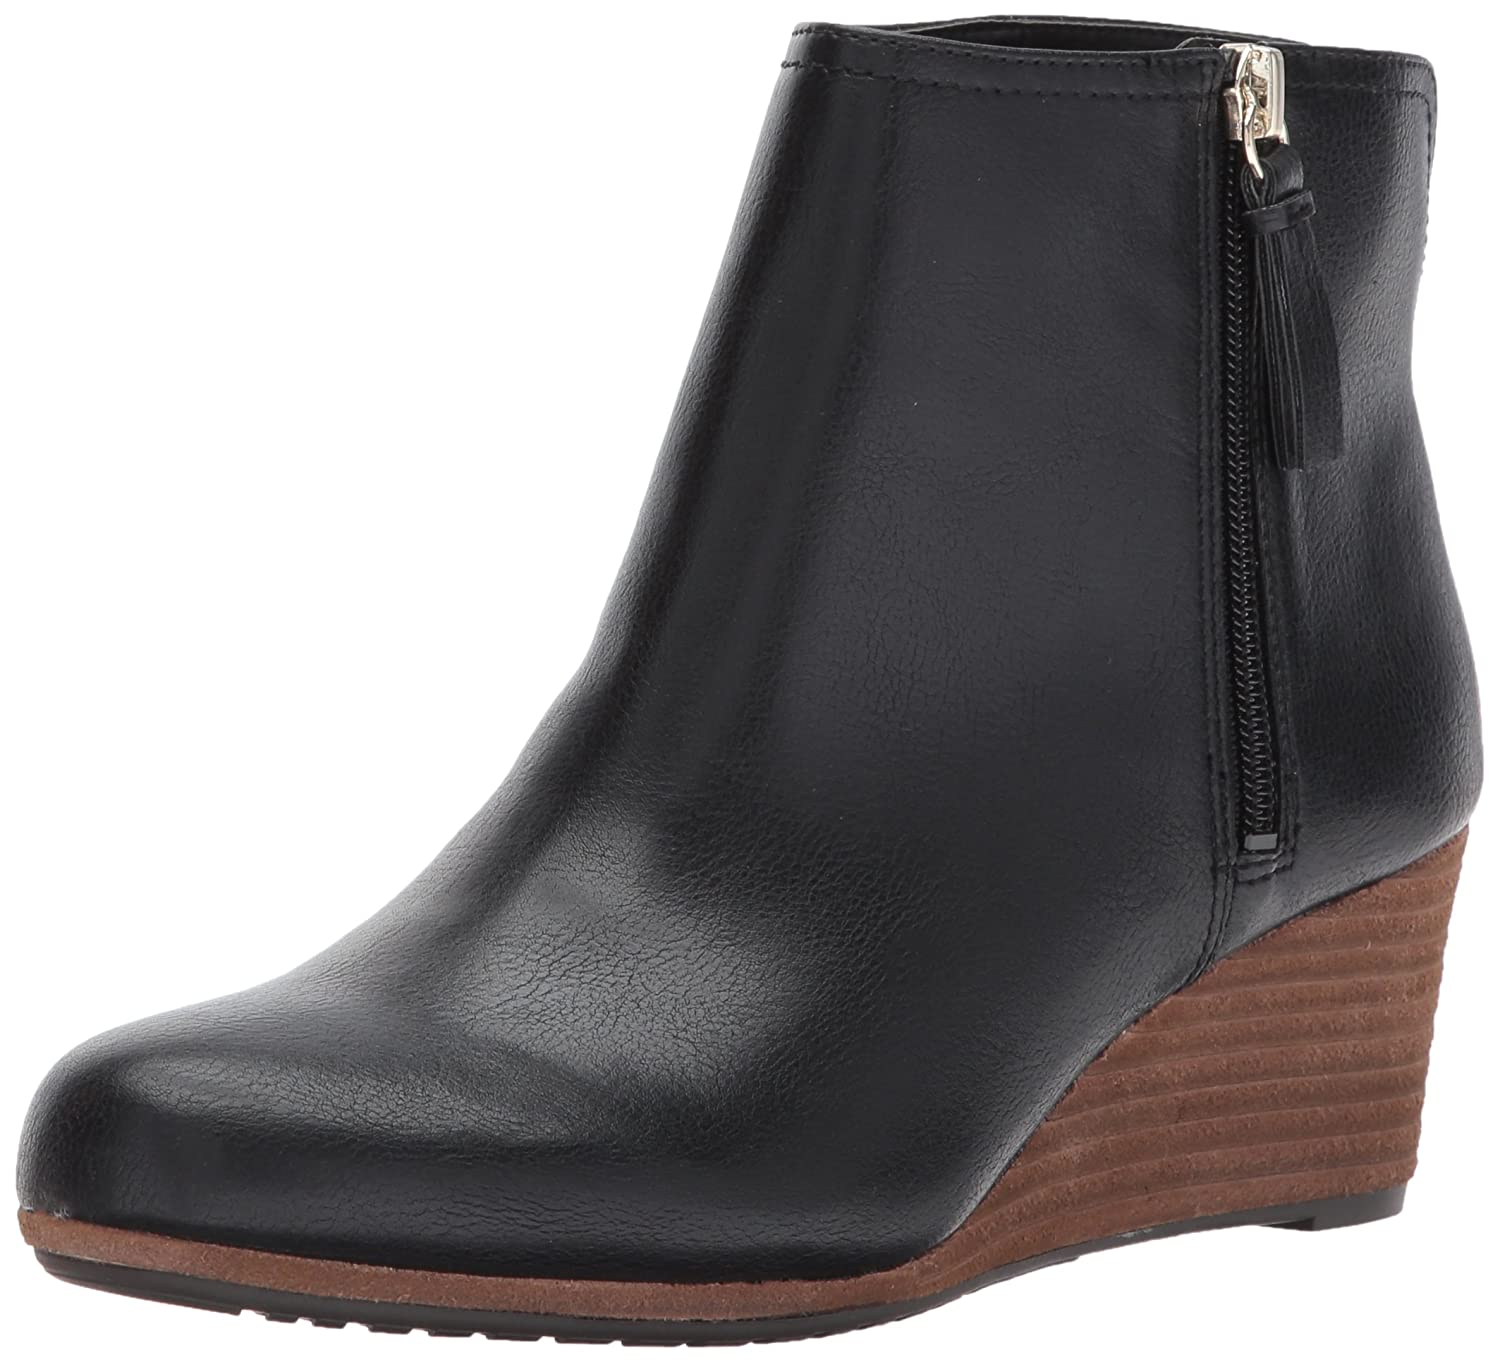 Dr. Scholl's Shoes Women's Dwell Boot B06Y4JHDT4 9.5 M US|Black Tumbled